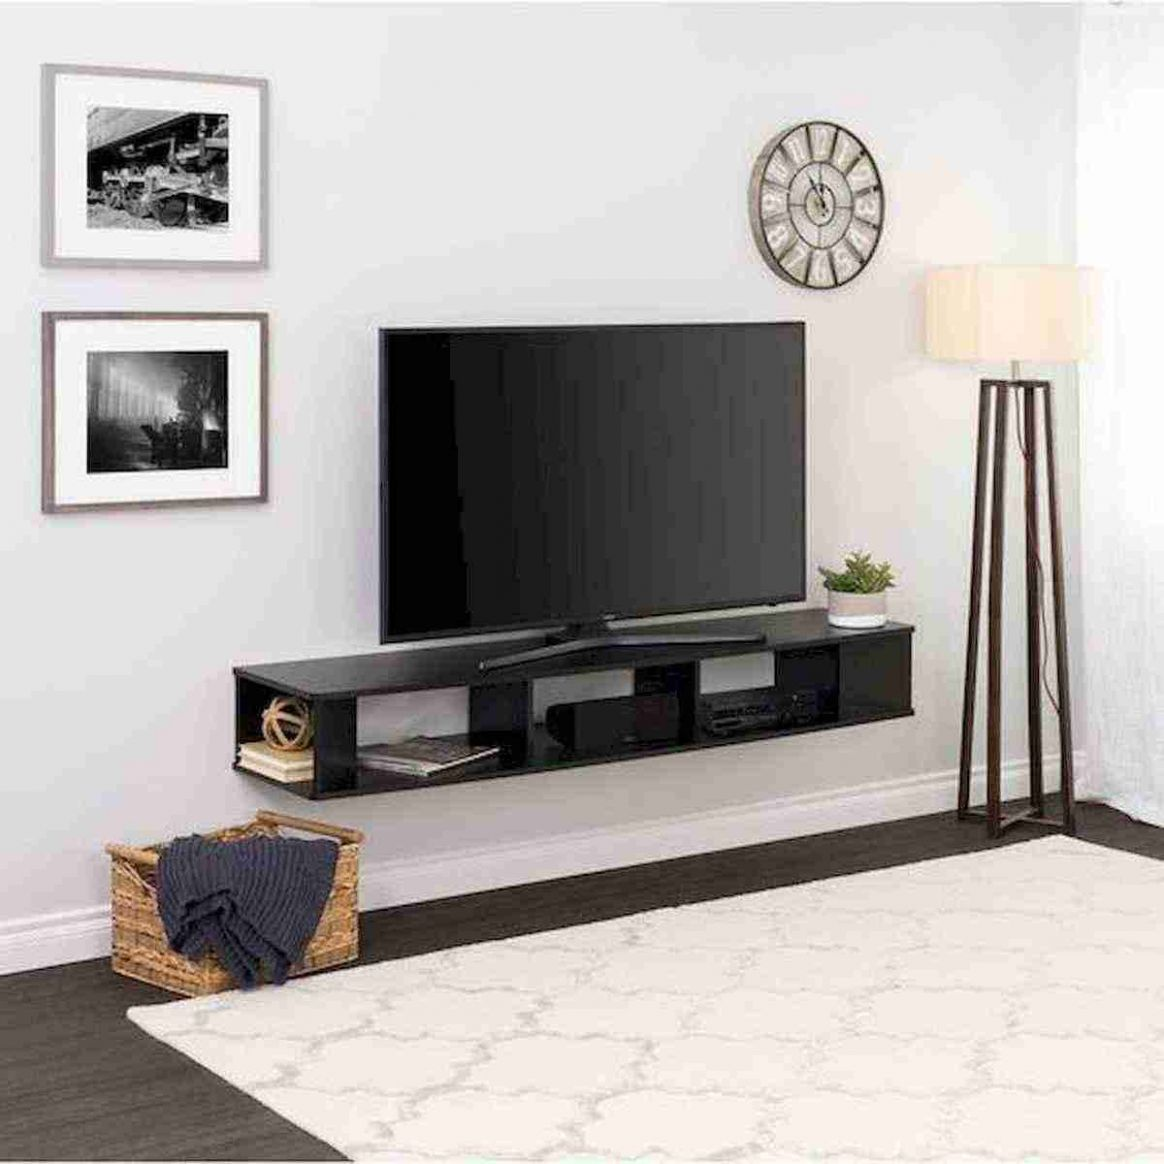 8 Amazing Living Room TV Wall Decor Ideas And Remodel ..